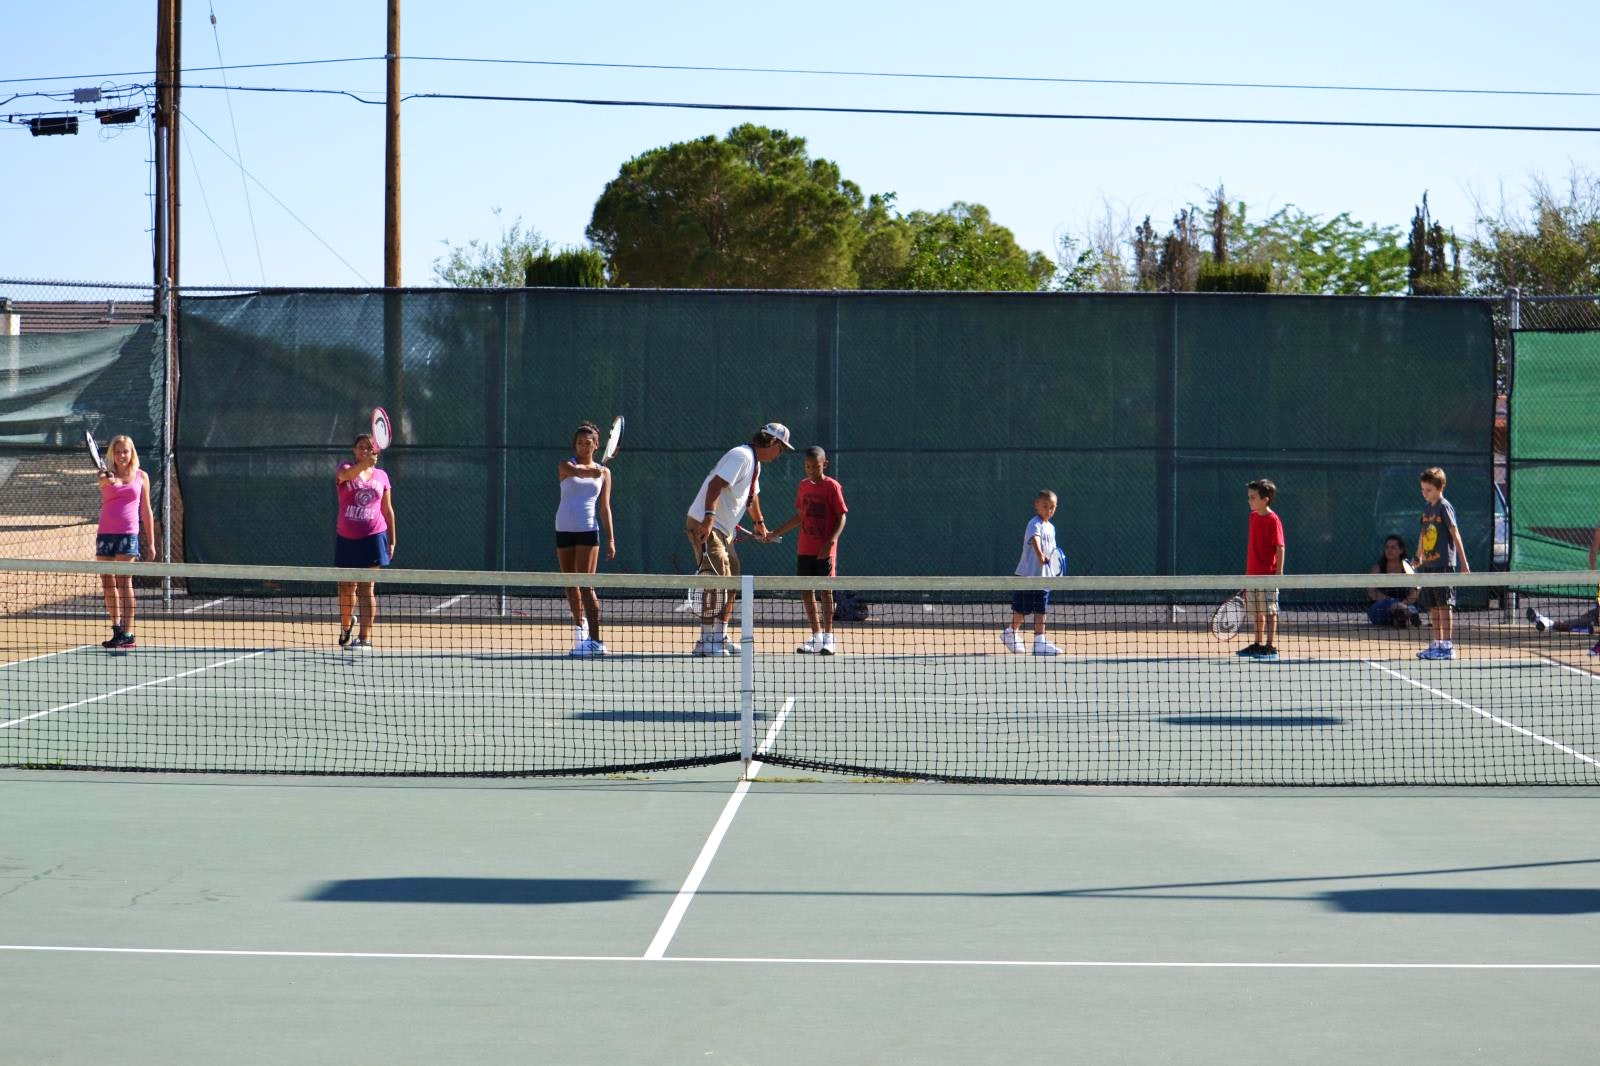 Bill M. teaches tennis lessons in Apple Valley, CA